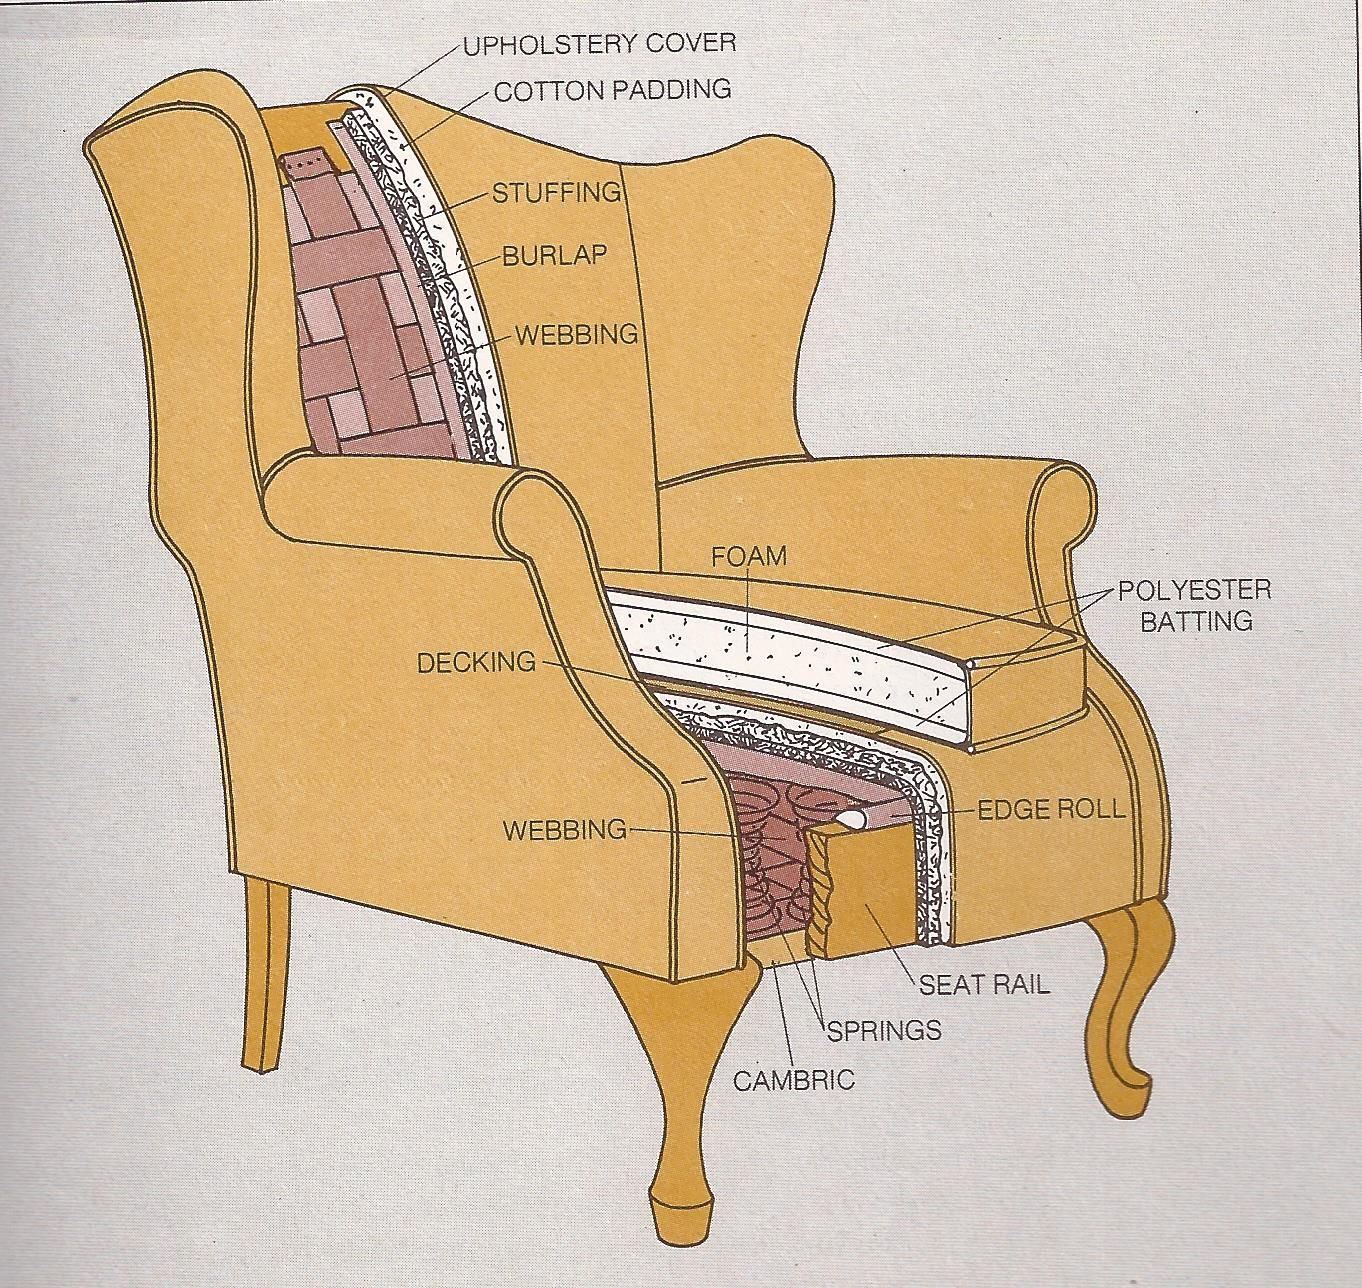 Upholstery Couch Diy 3 Diagrams To Help You Understand Upholstery Better